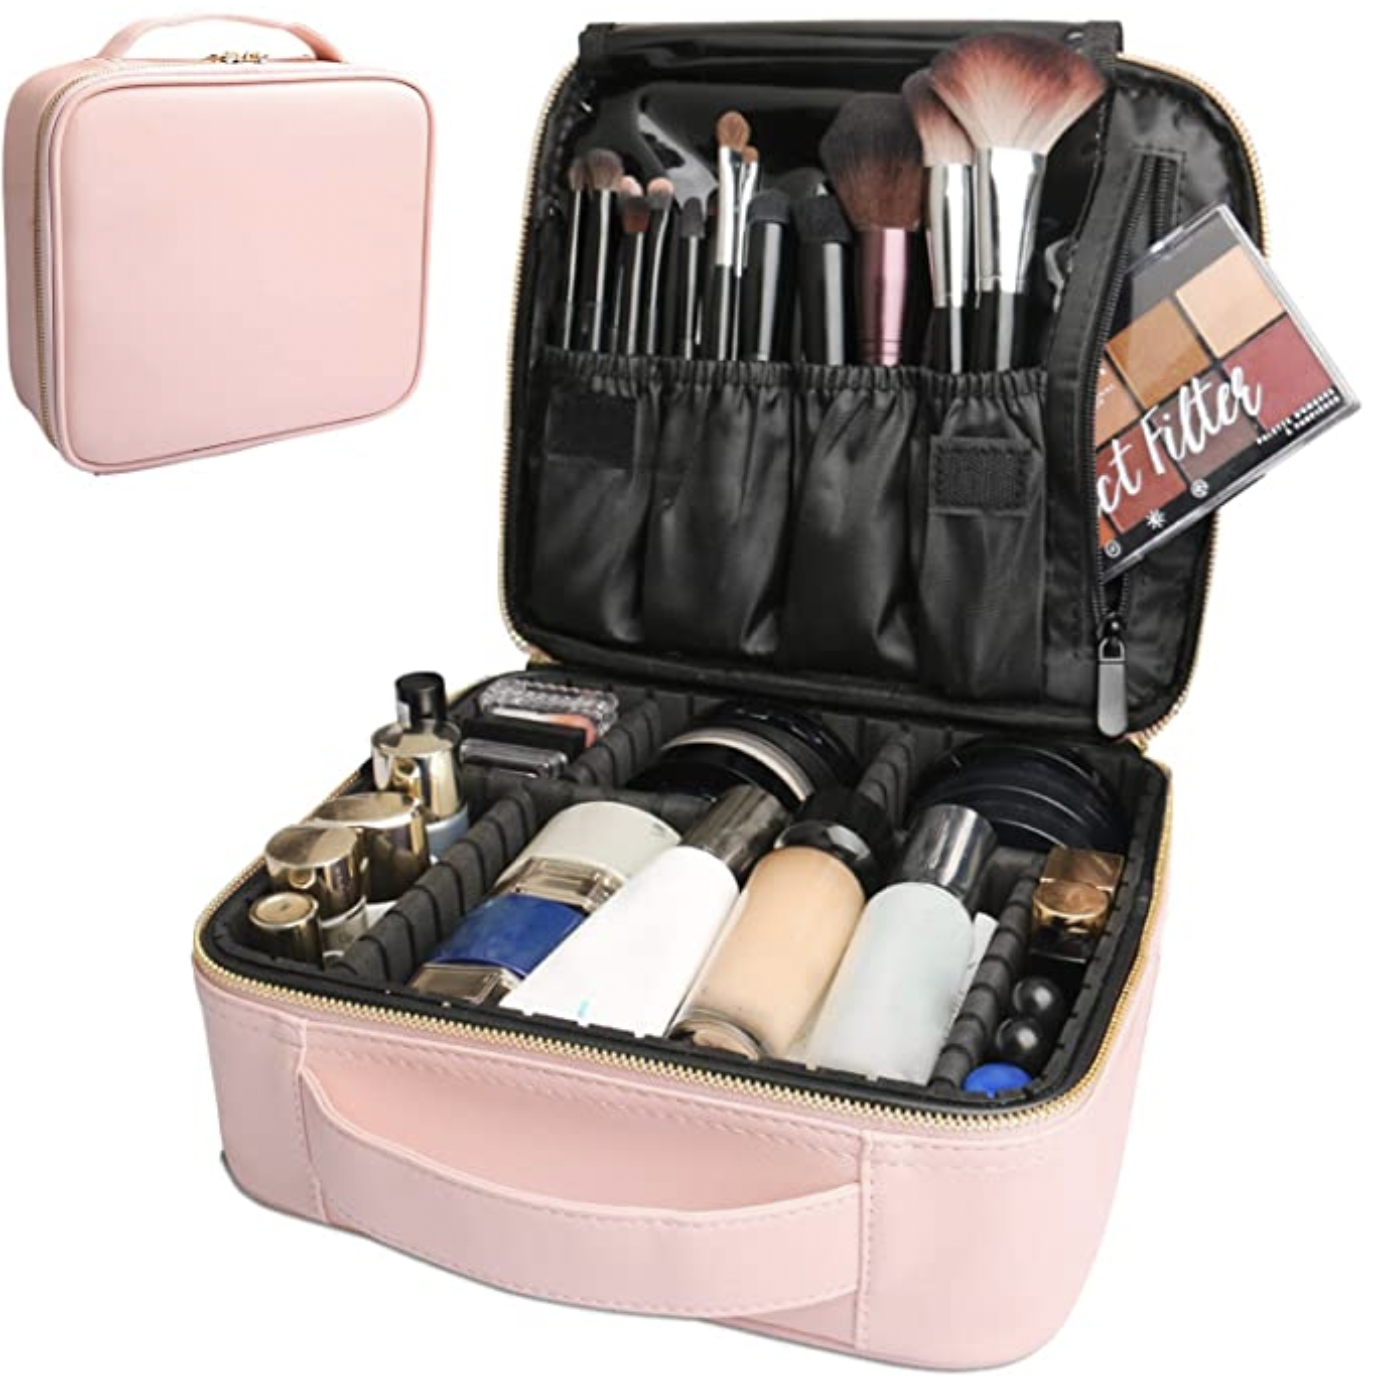 6 Items I've Sold on Poshmark & Why by Basically A Mess (photo of Amazon pink makeup case)